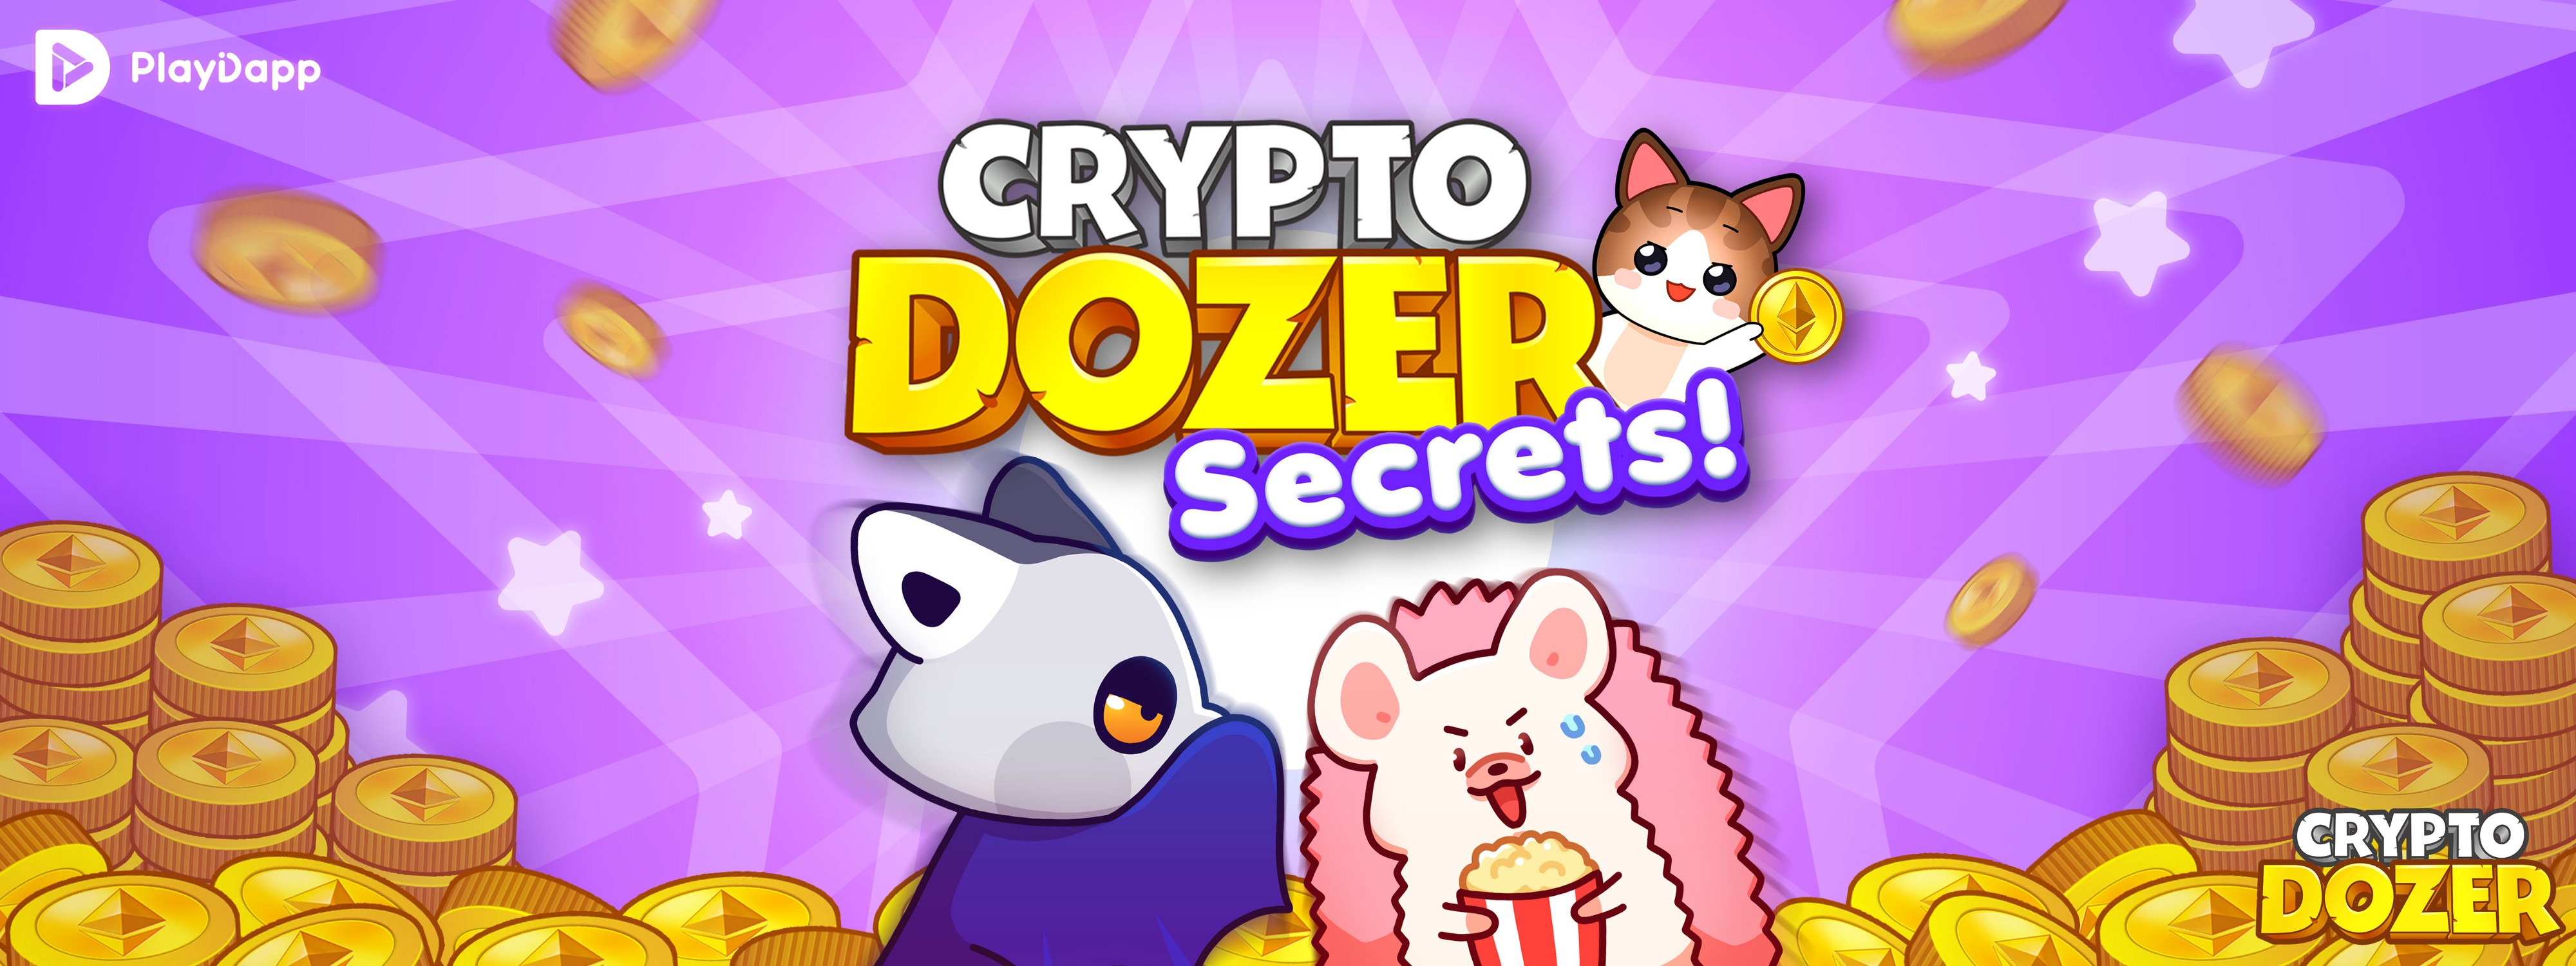 CryptoDozer Secrets #05 —Double Stack & Slide - PlayDapp - Medium